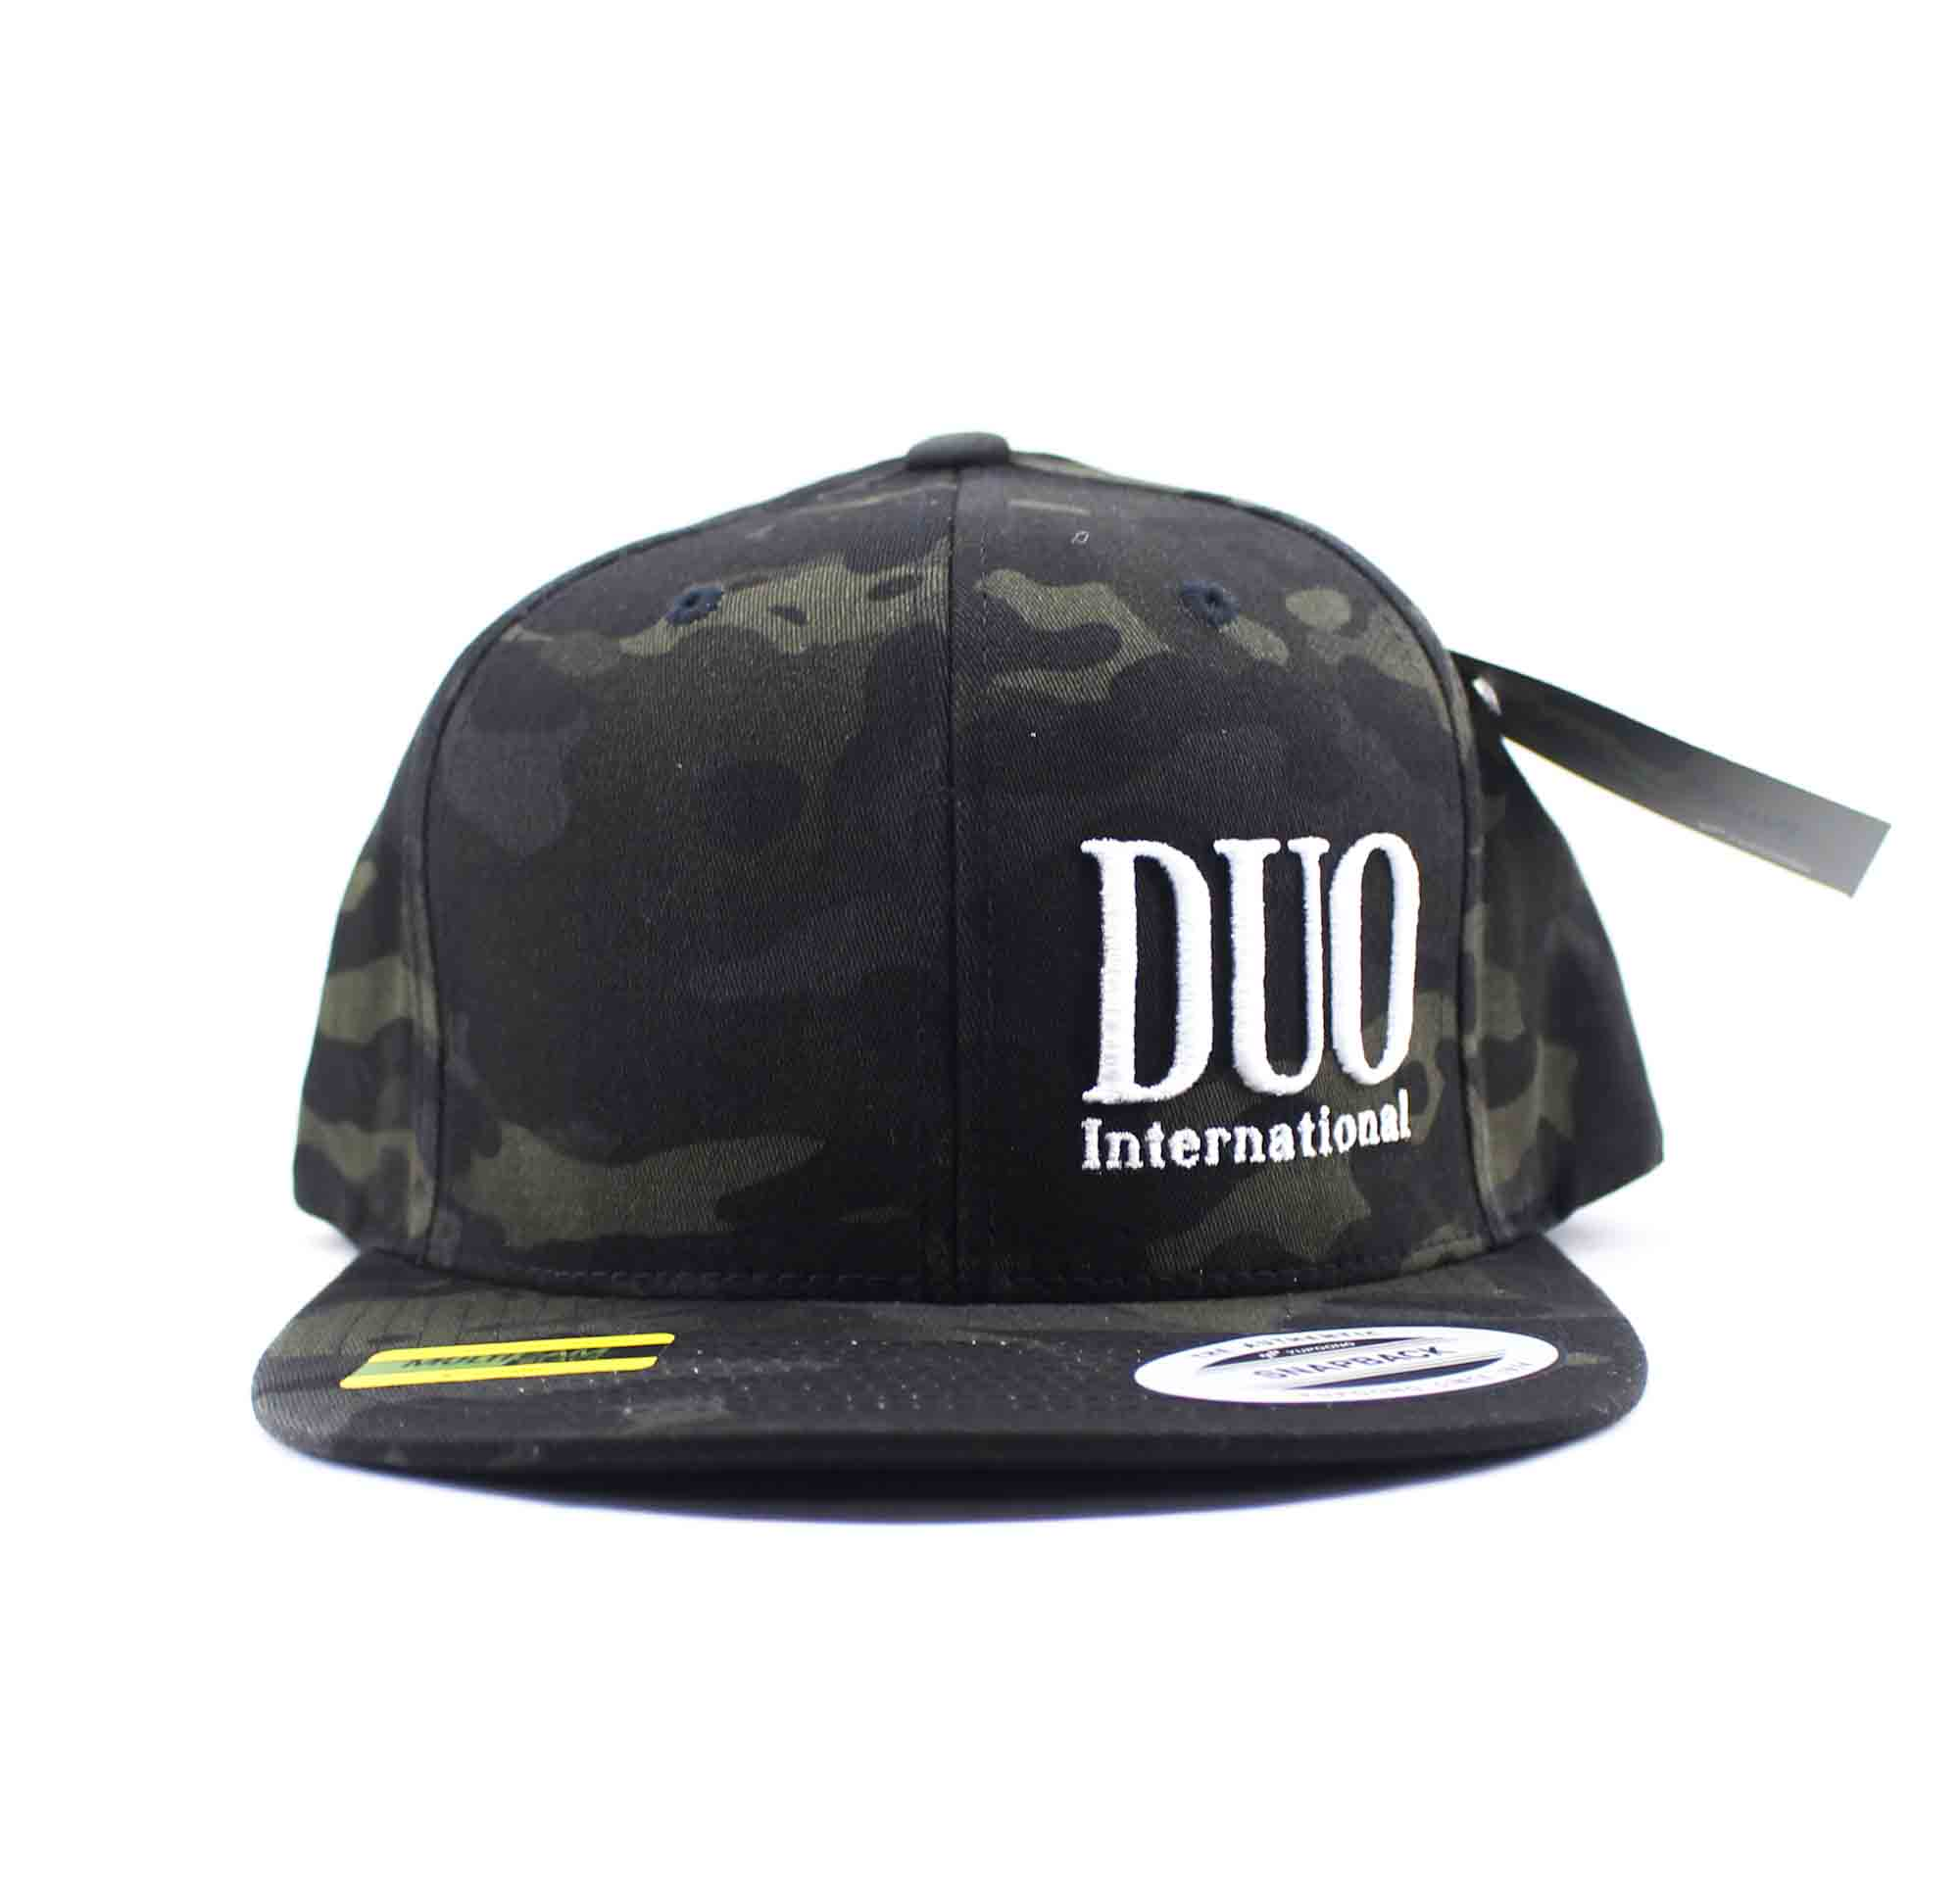 Duo Cap Snapback Cap Original Japan Free Size Black Multicamou (4234)